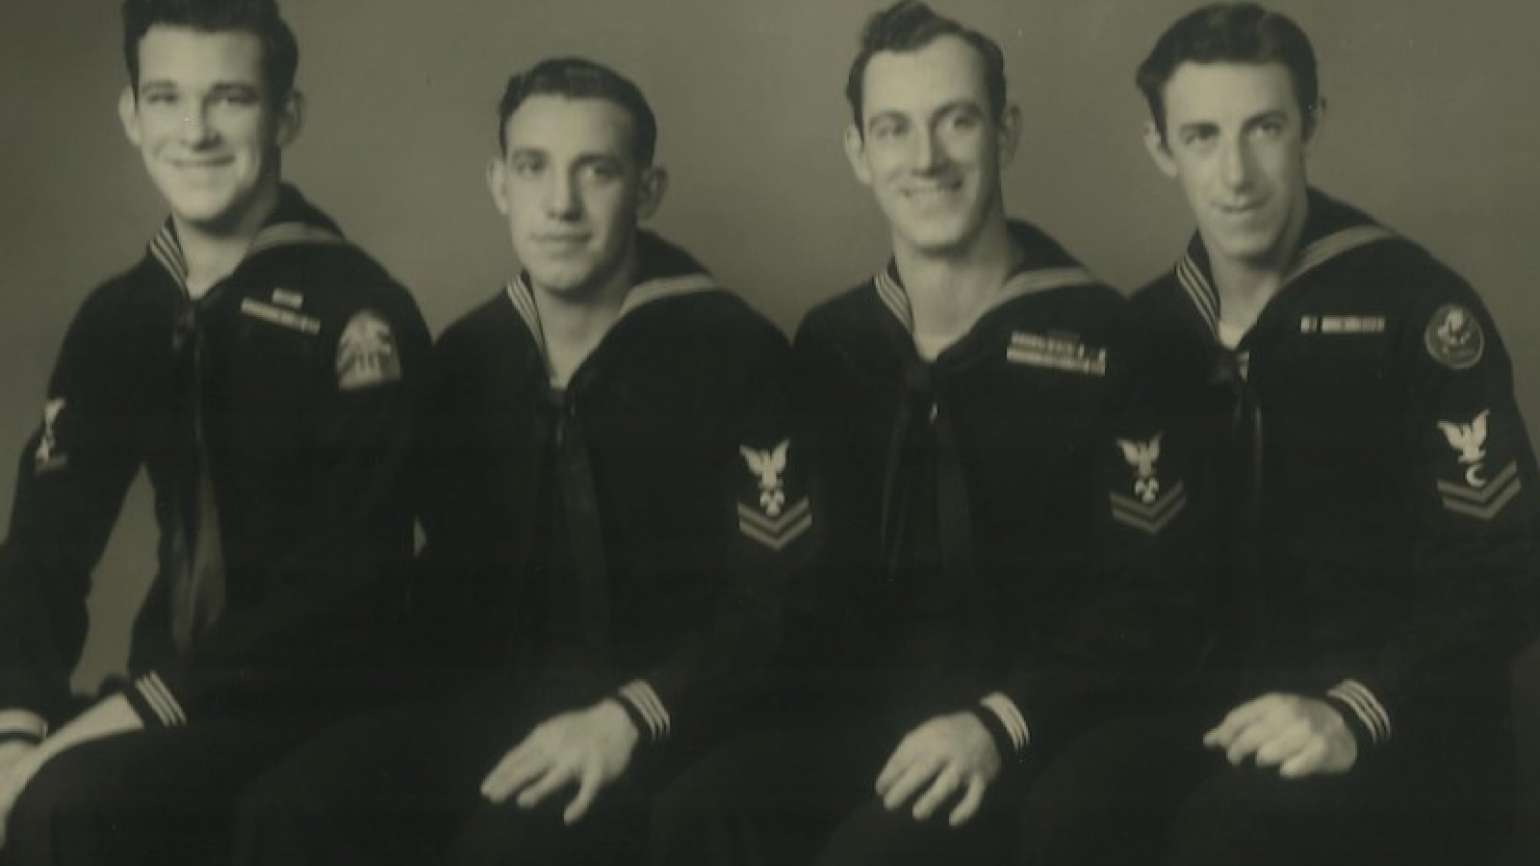 Michelle Cox's dad, second from left, and uncles in U.S. Navy uniforms.